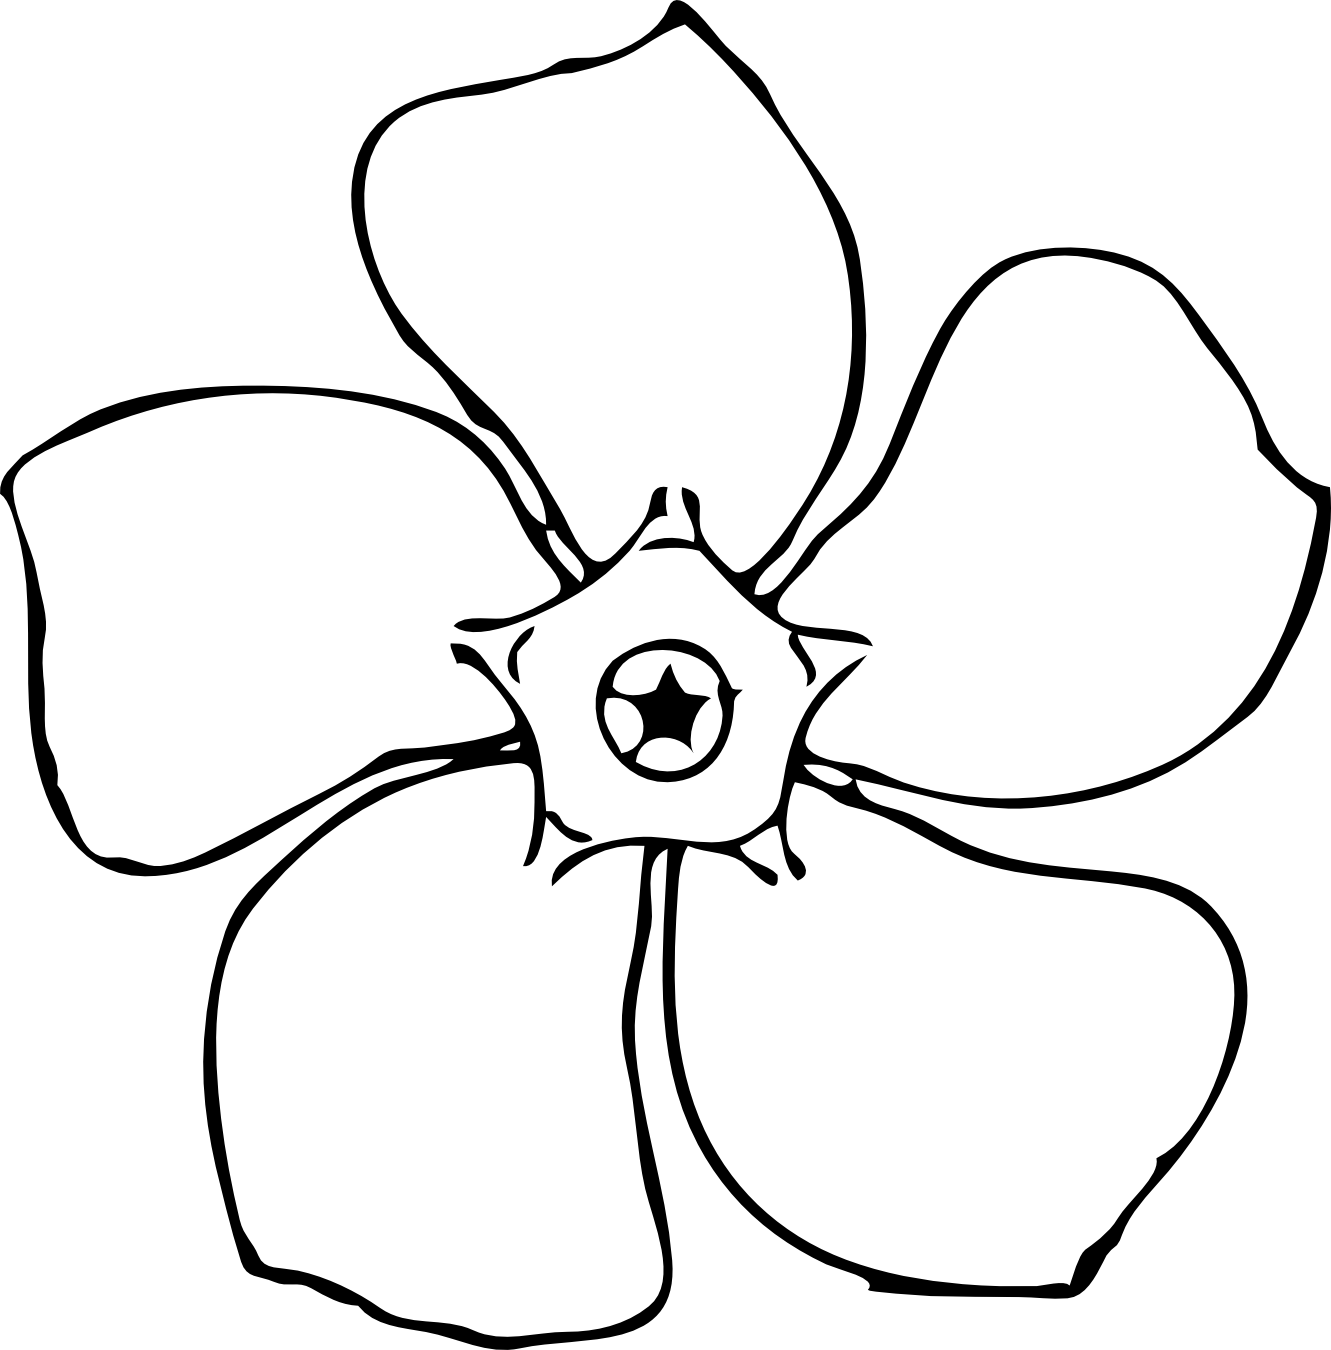 Drawing sunflowers sad. Gousicteco orchid clipart black